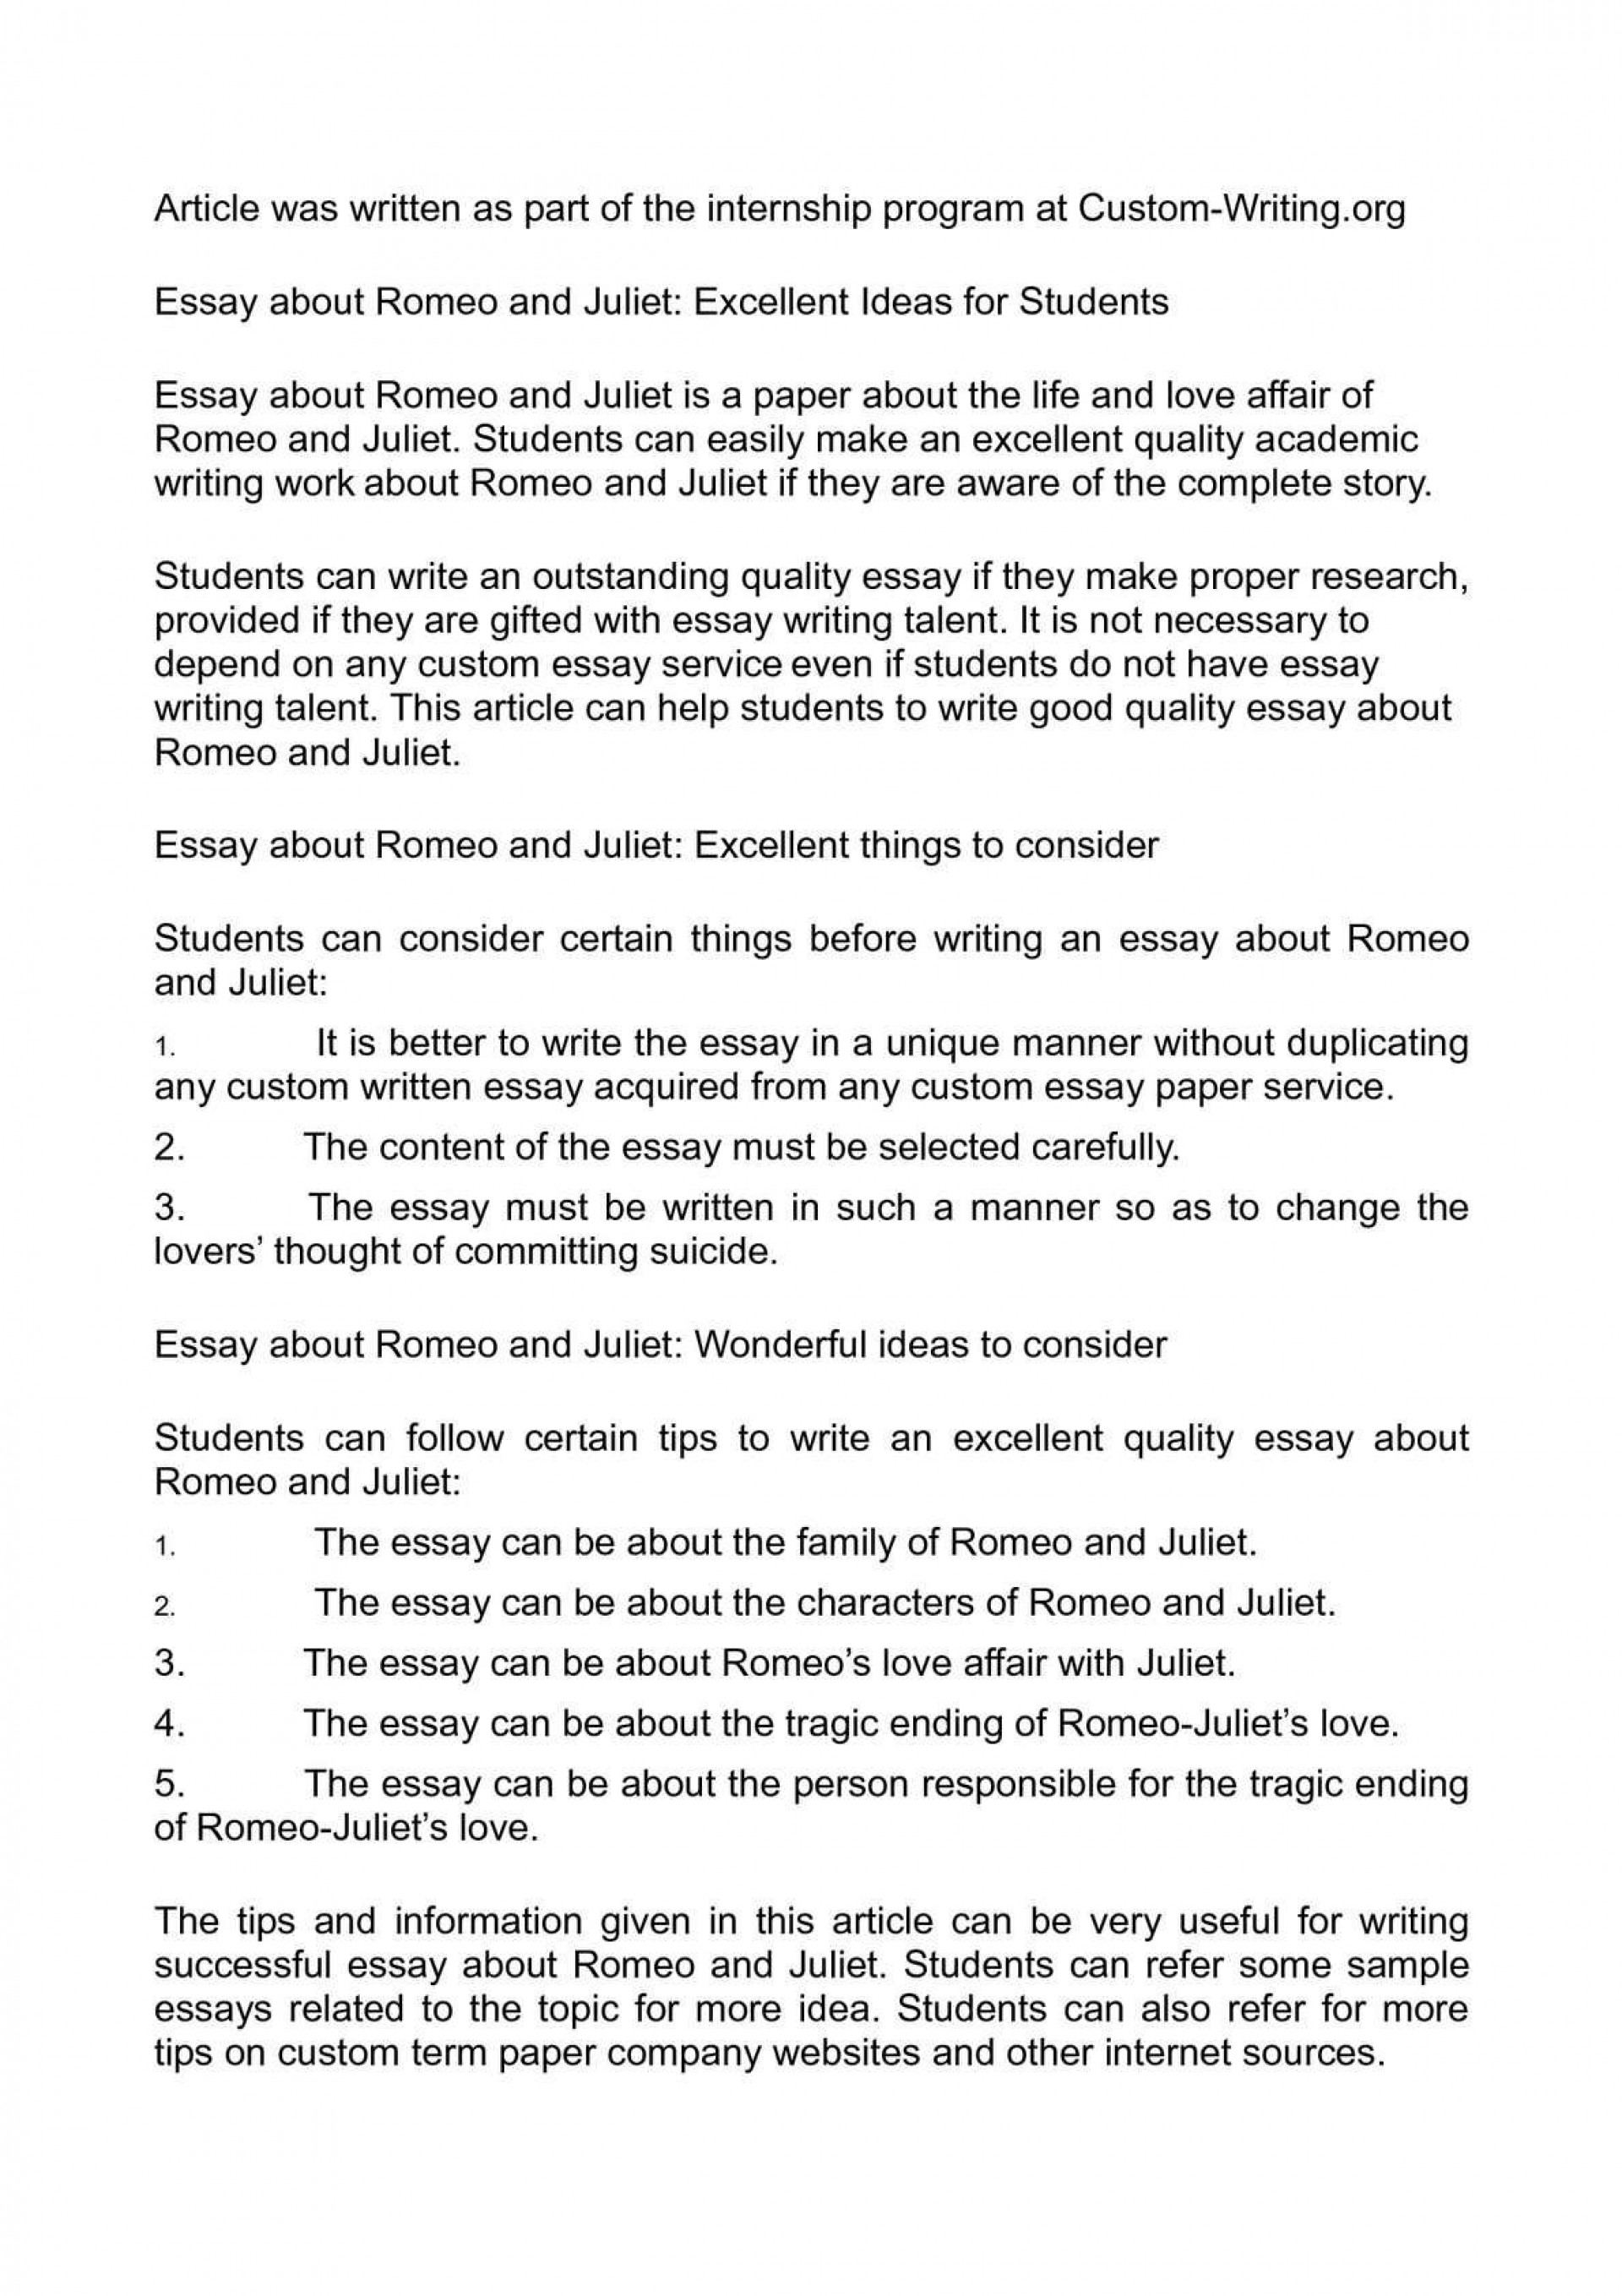 009 Surprising Romeo And Juliet Essay Photo  Who I Responsible For Juliet' Death Introduction Hook Question Pdf1920